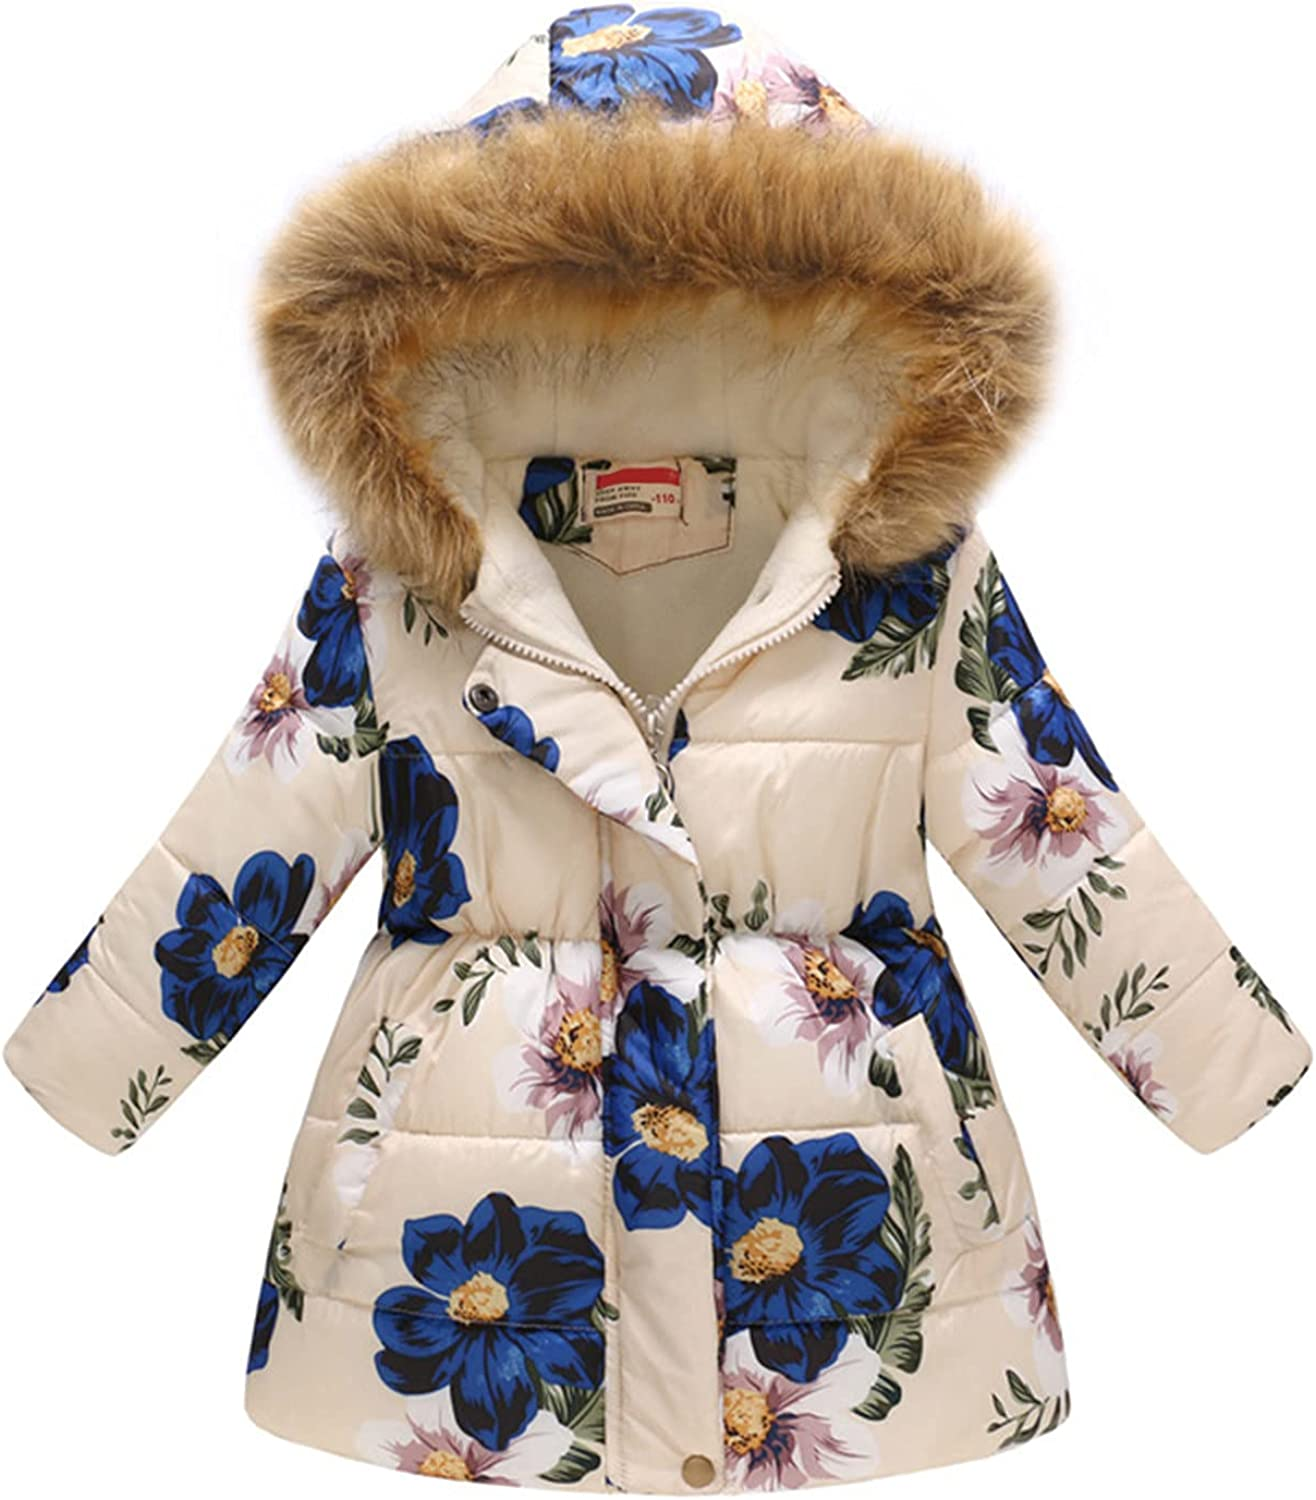 Kids Child Girls Winter Thick Warm Parkas Hooded Floral Print Fur Mid-long Coat 2-11 Years